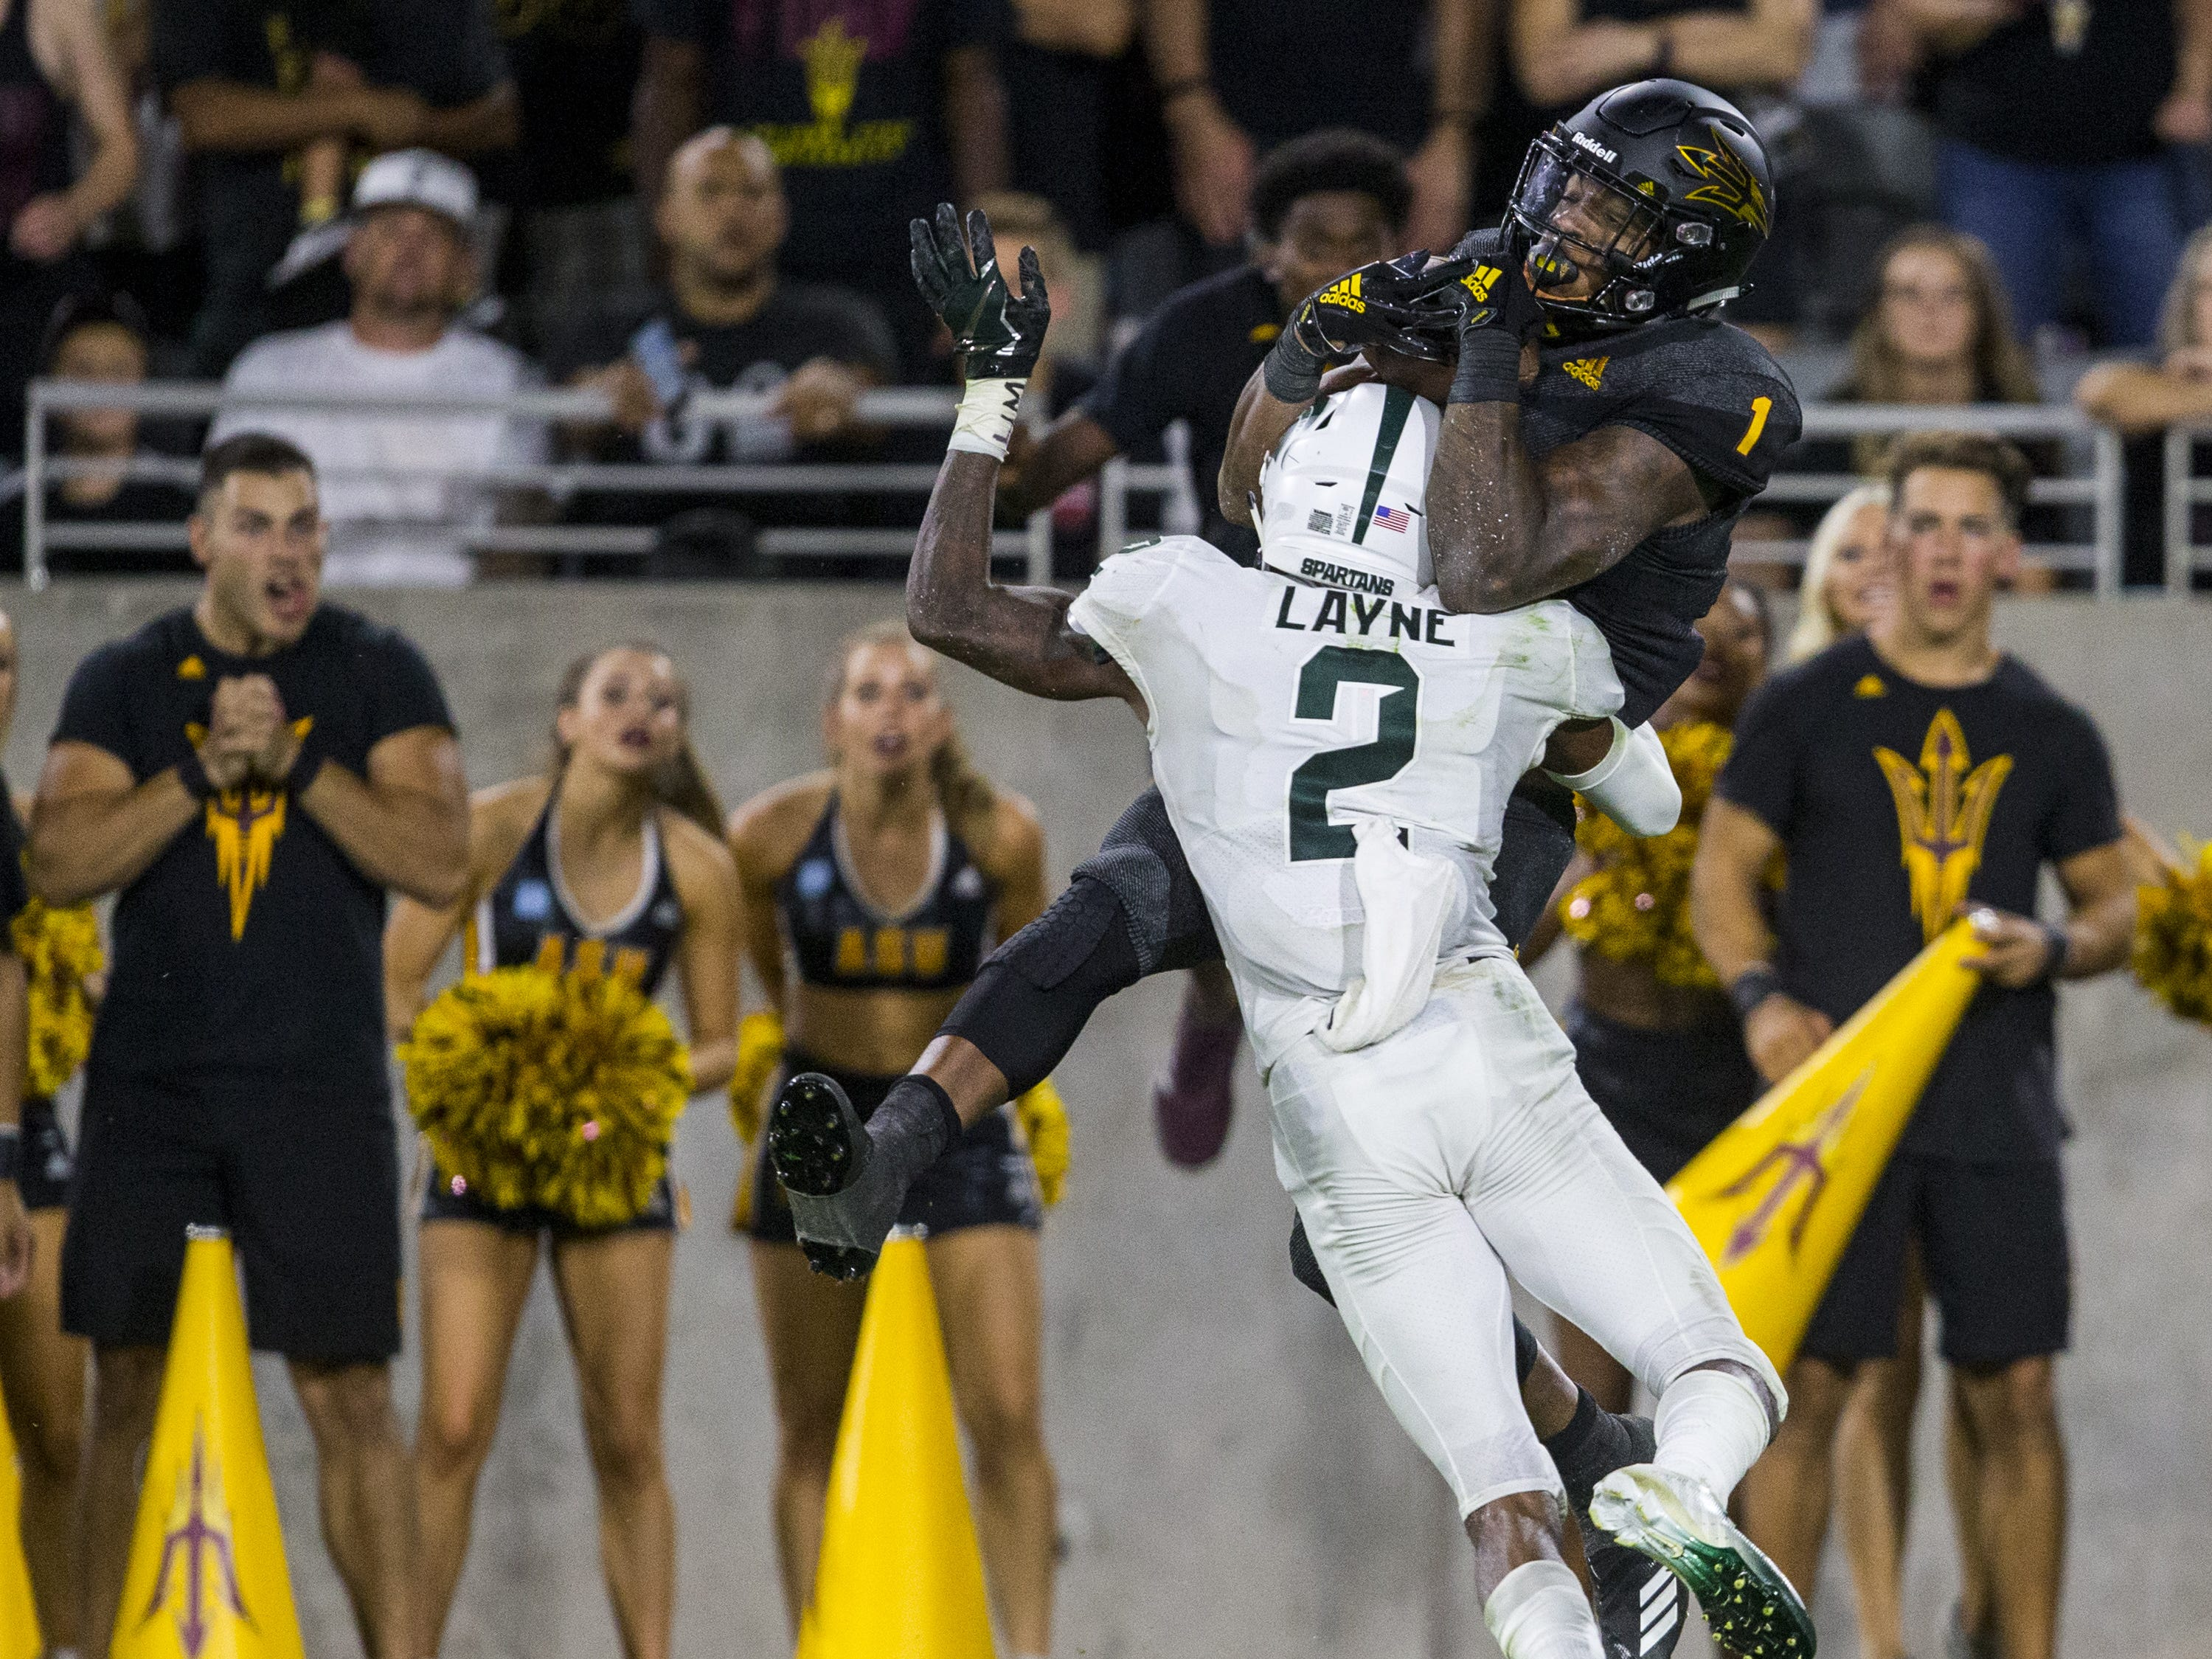 Arizona State's N'Keal Harry makes a catch over Michigan State's Justin Layne for a touchdown in the 4th quarter on Saturday, Sept. 8, 2018, at Sun Devil Stadium in Tempe, Ariz. Arizona State won, 16-13.